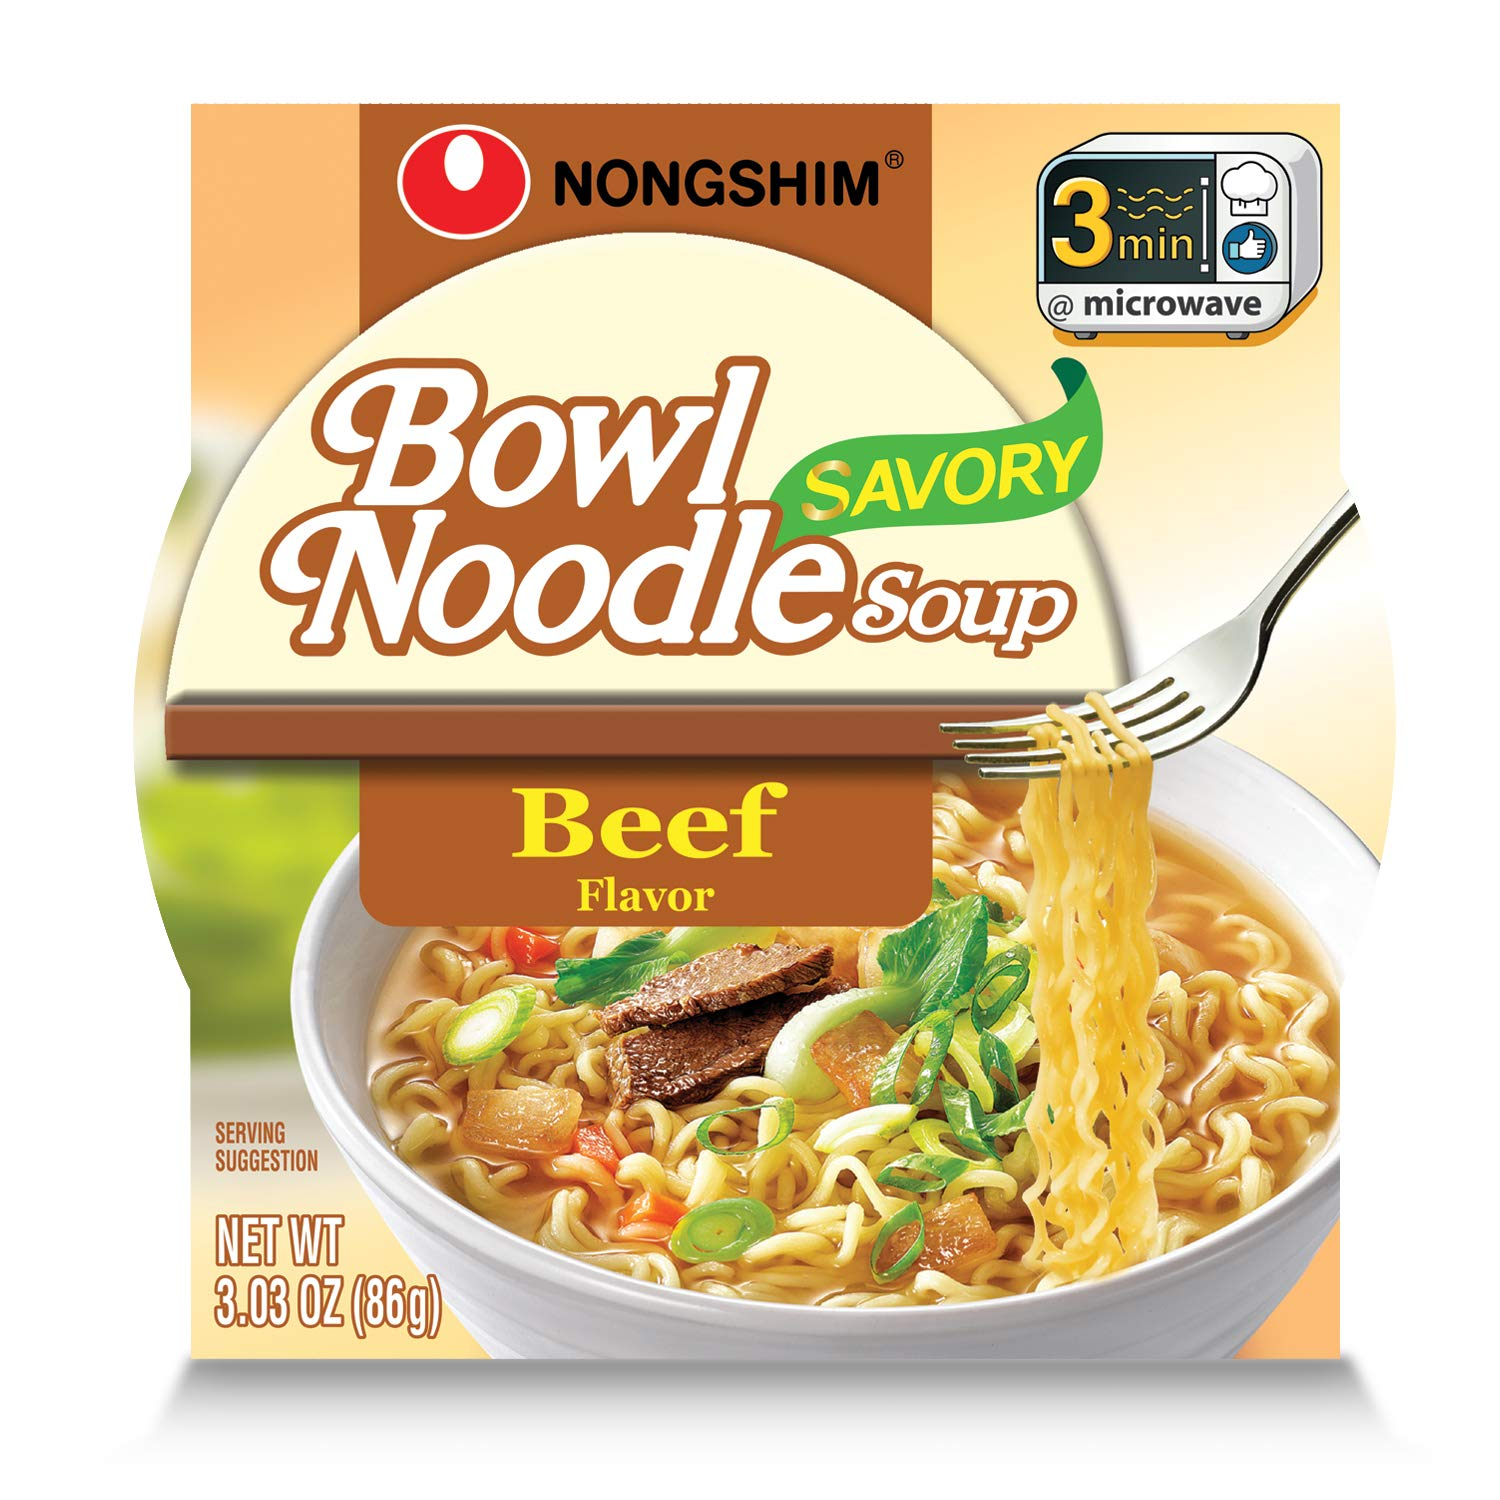 Nongshim Savory Beef Noodle Soup Max 50% OFF 3.03 Max 59% OFF of Ounce 6 Pack